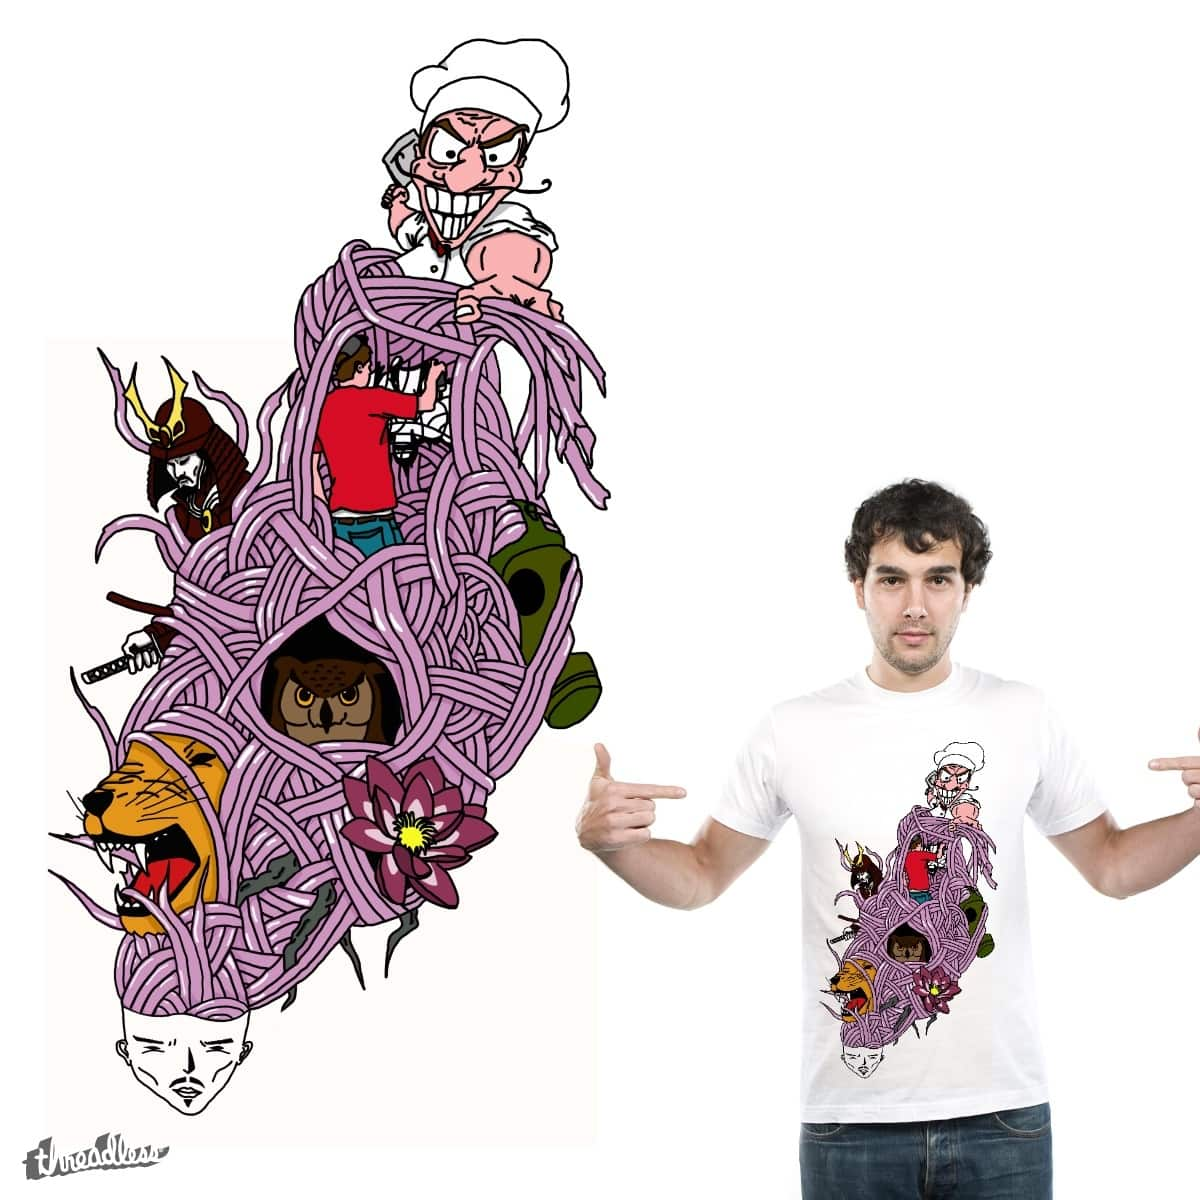 Mind by Bacustro on Threadless